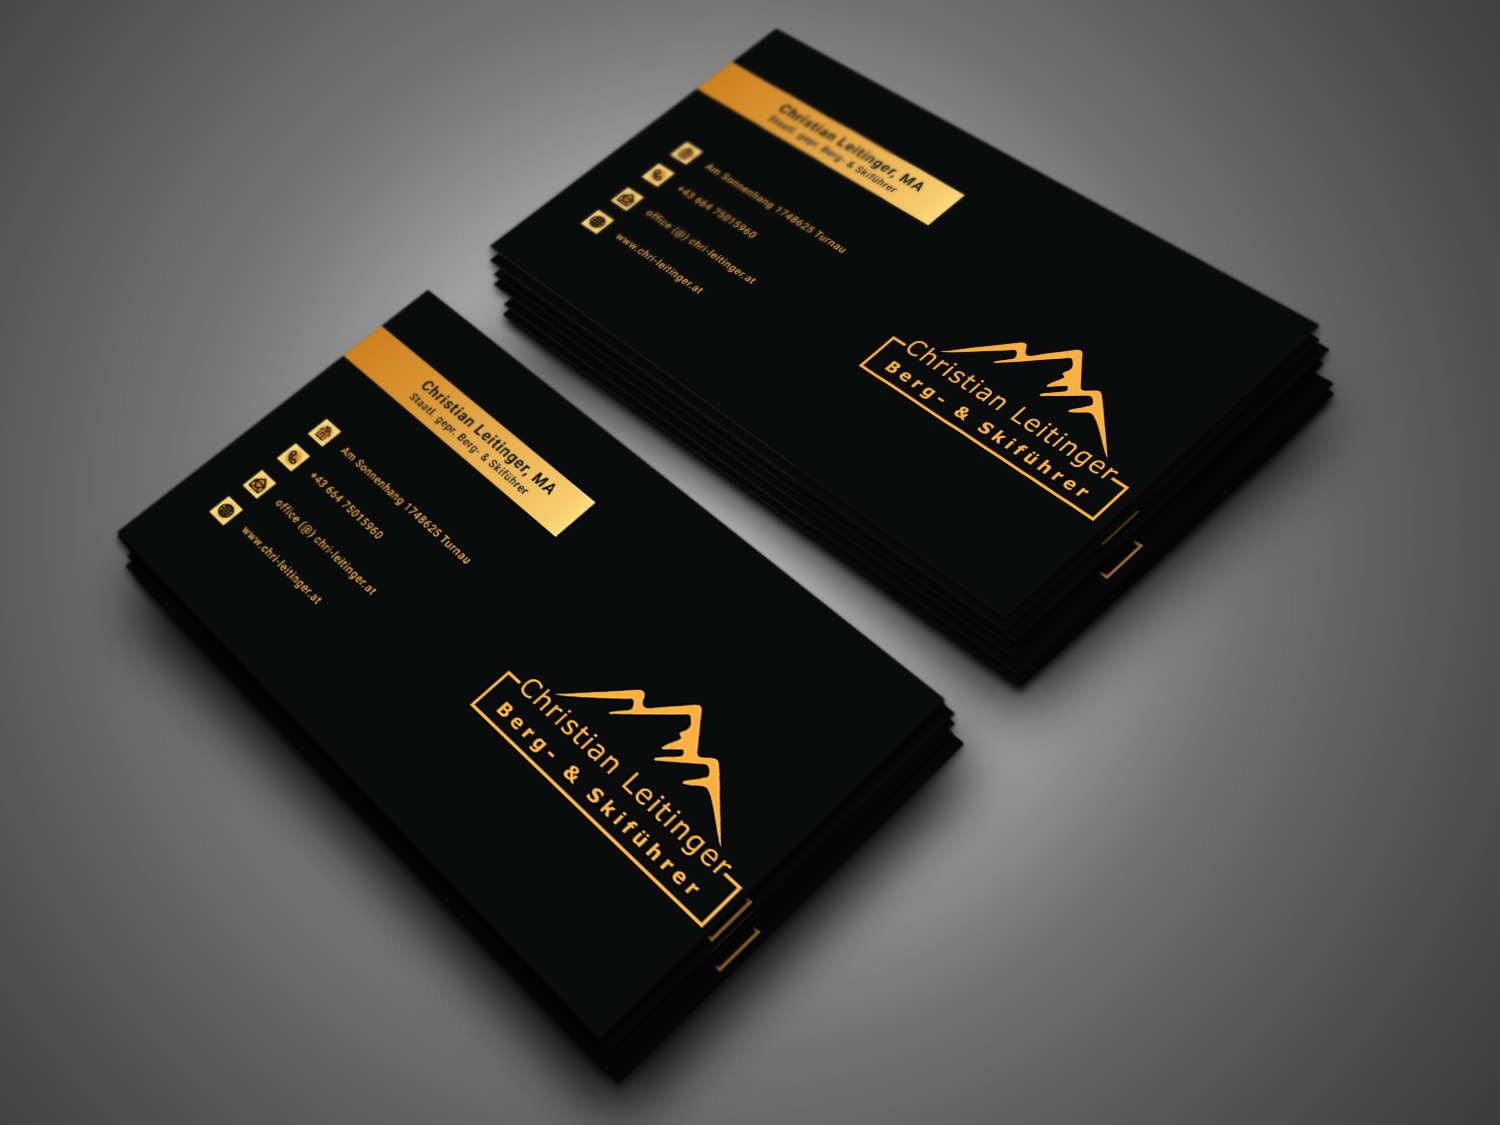 I will do design luxury business and minimalist logo card in 24 hour